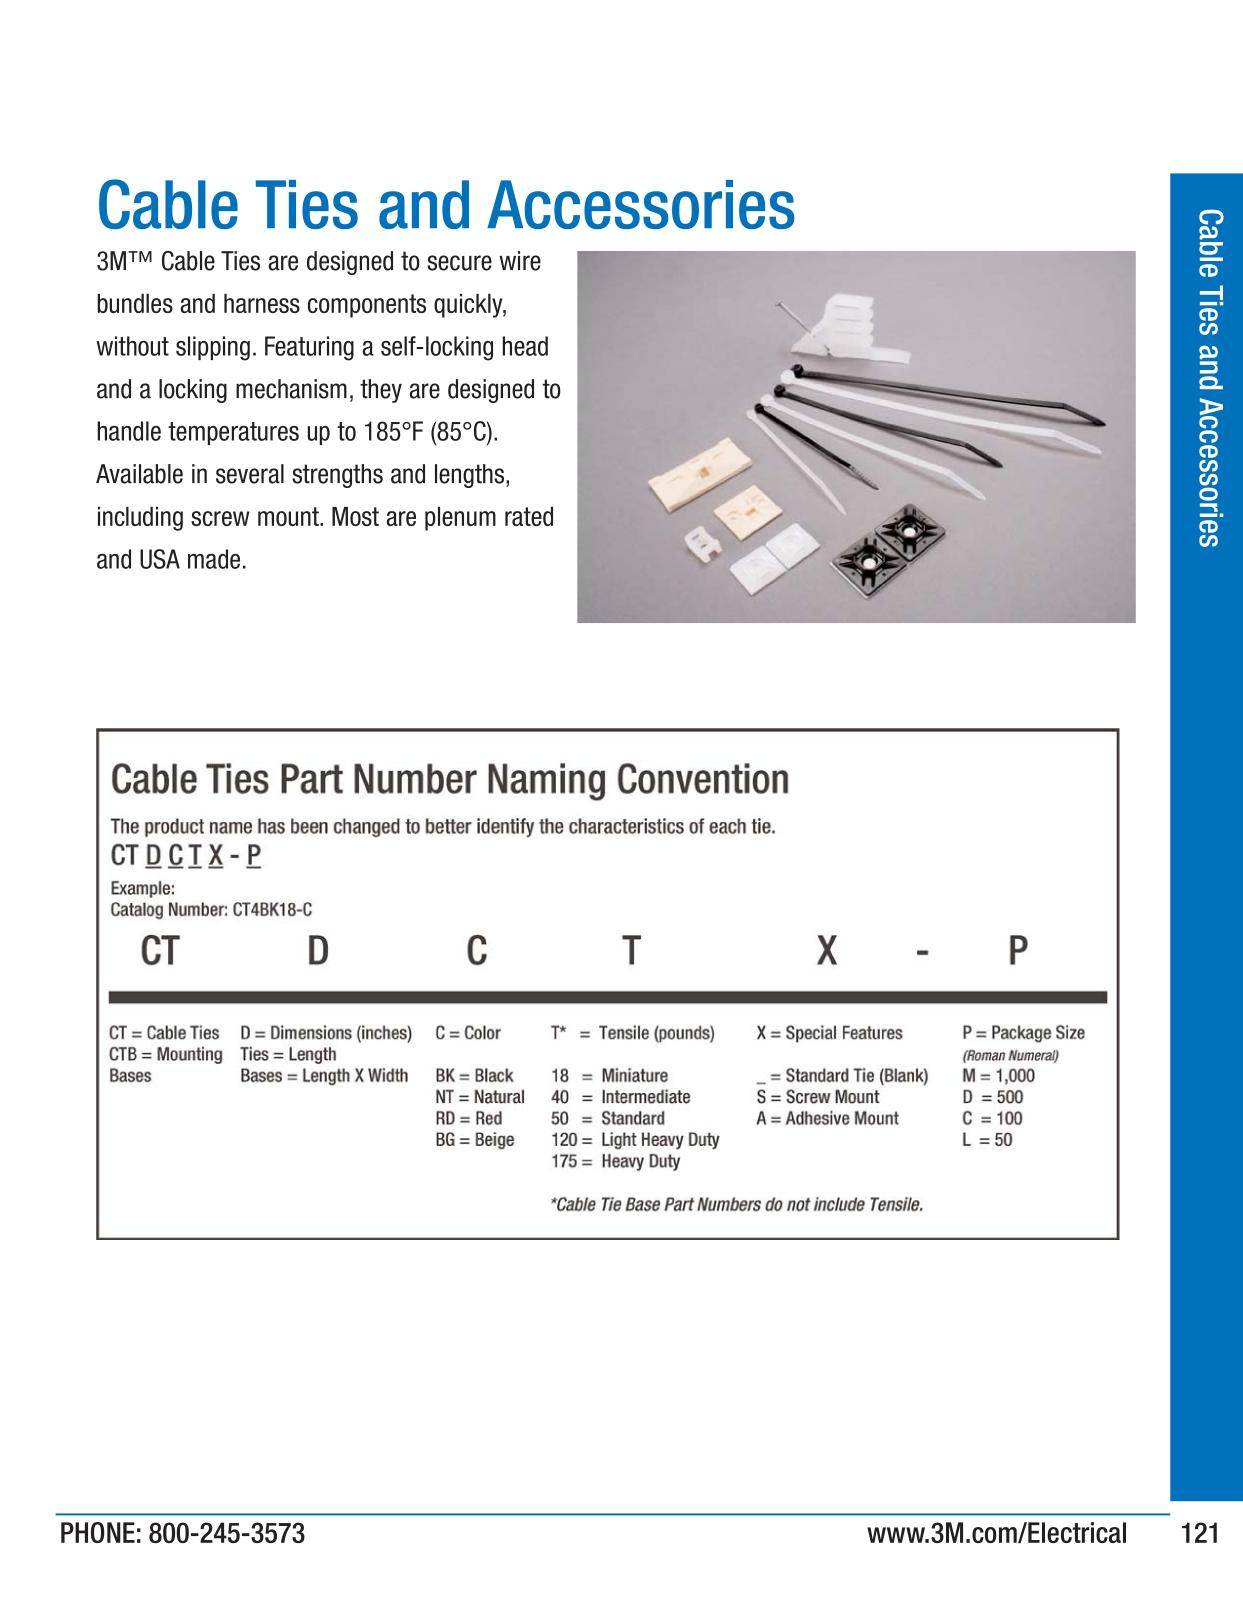 121?RelId=6.10.6.0.5 lugs and connectors 3m electrical products page 119 Headset Wiring-Diagram Apt at virtualis.co